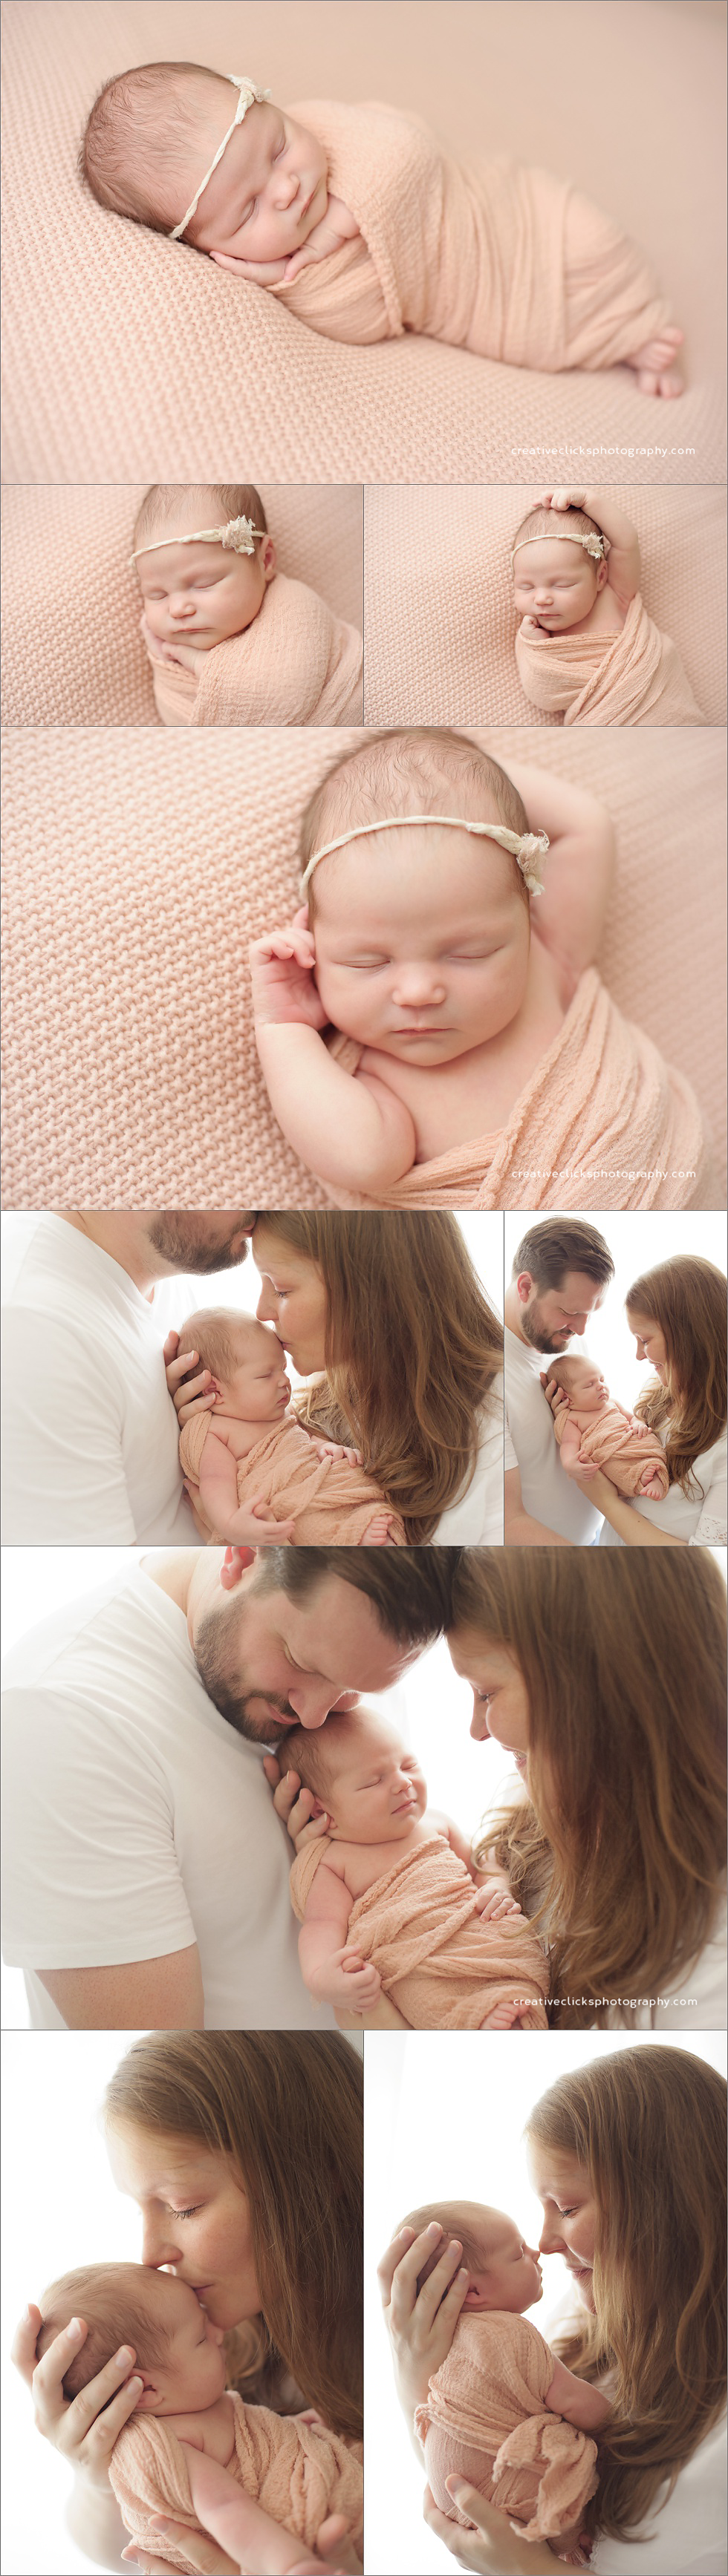 baby and parent posing pink blanket natural posing